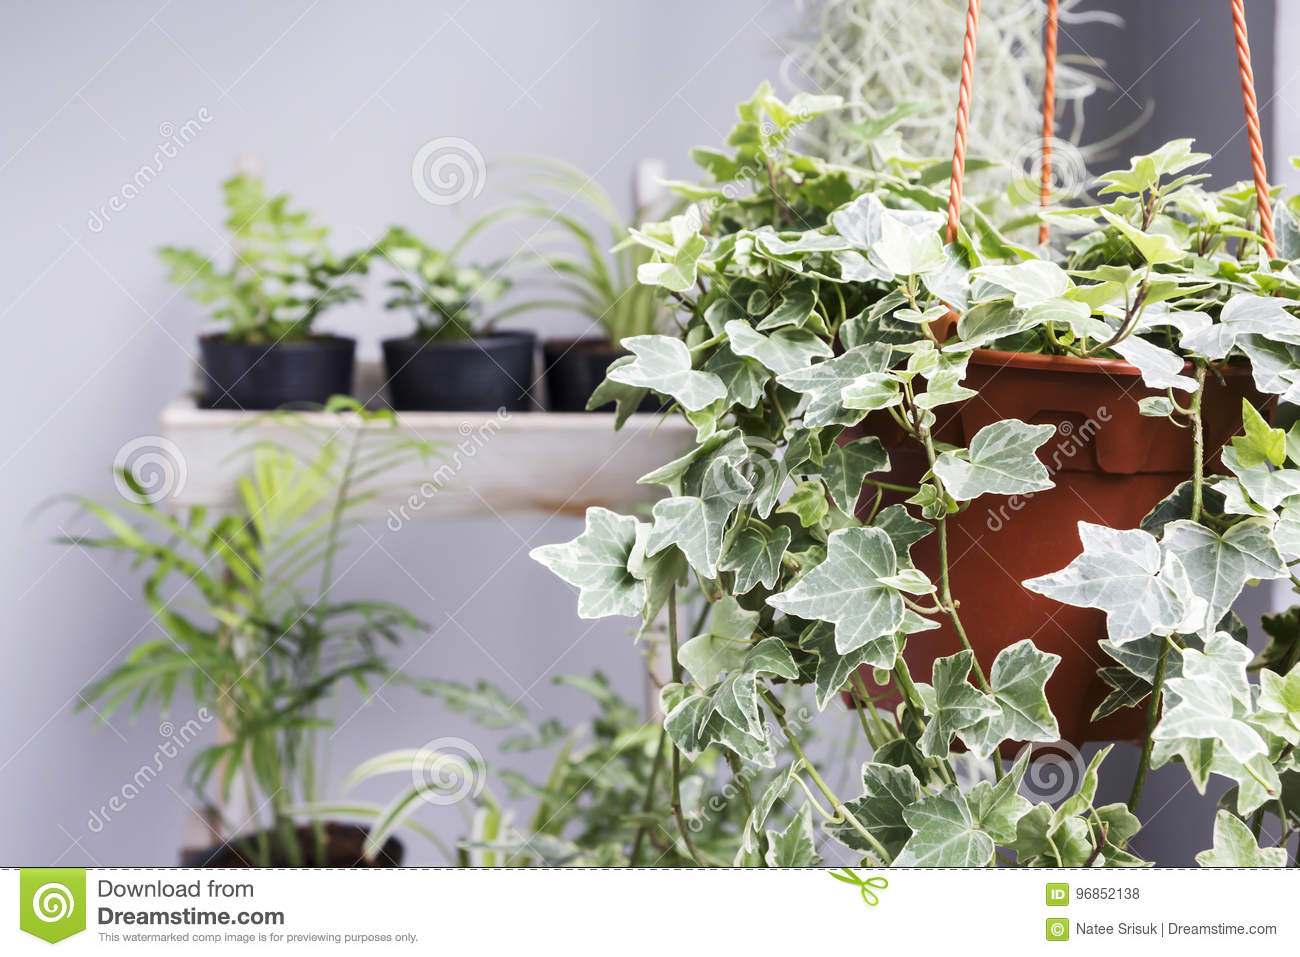 Home And Garden Concept Of English Ivy Plant In Pot Stock ... Ivy House Plant Pot on ivy houseplant, yucca elephantipes house plant, ivy water plant, ivy ice plant, ivy flower, ivy indoor plant,